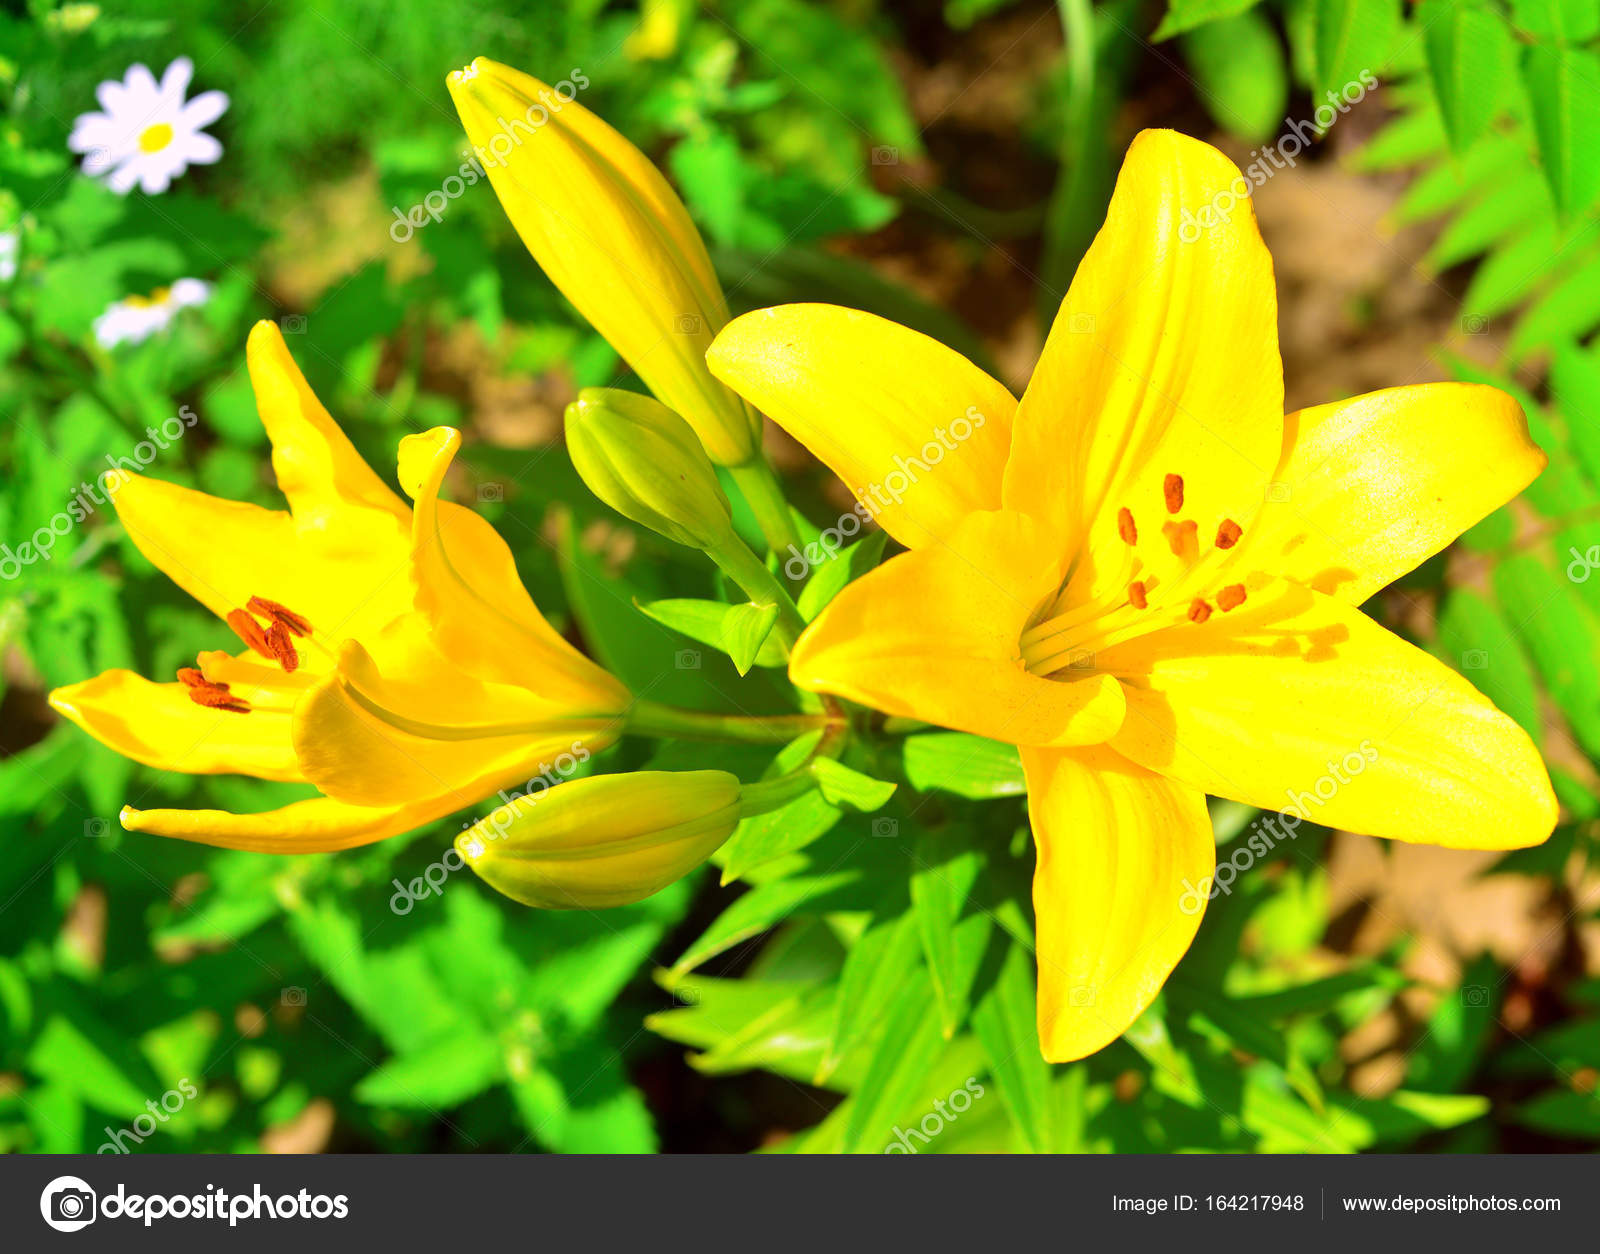 Beautiful lily flowers in a garden on a lawn background flowerb beautiful lily flowers in a garden on a lawn background flowerb stock photo izmirmasajfo